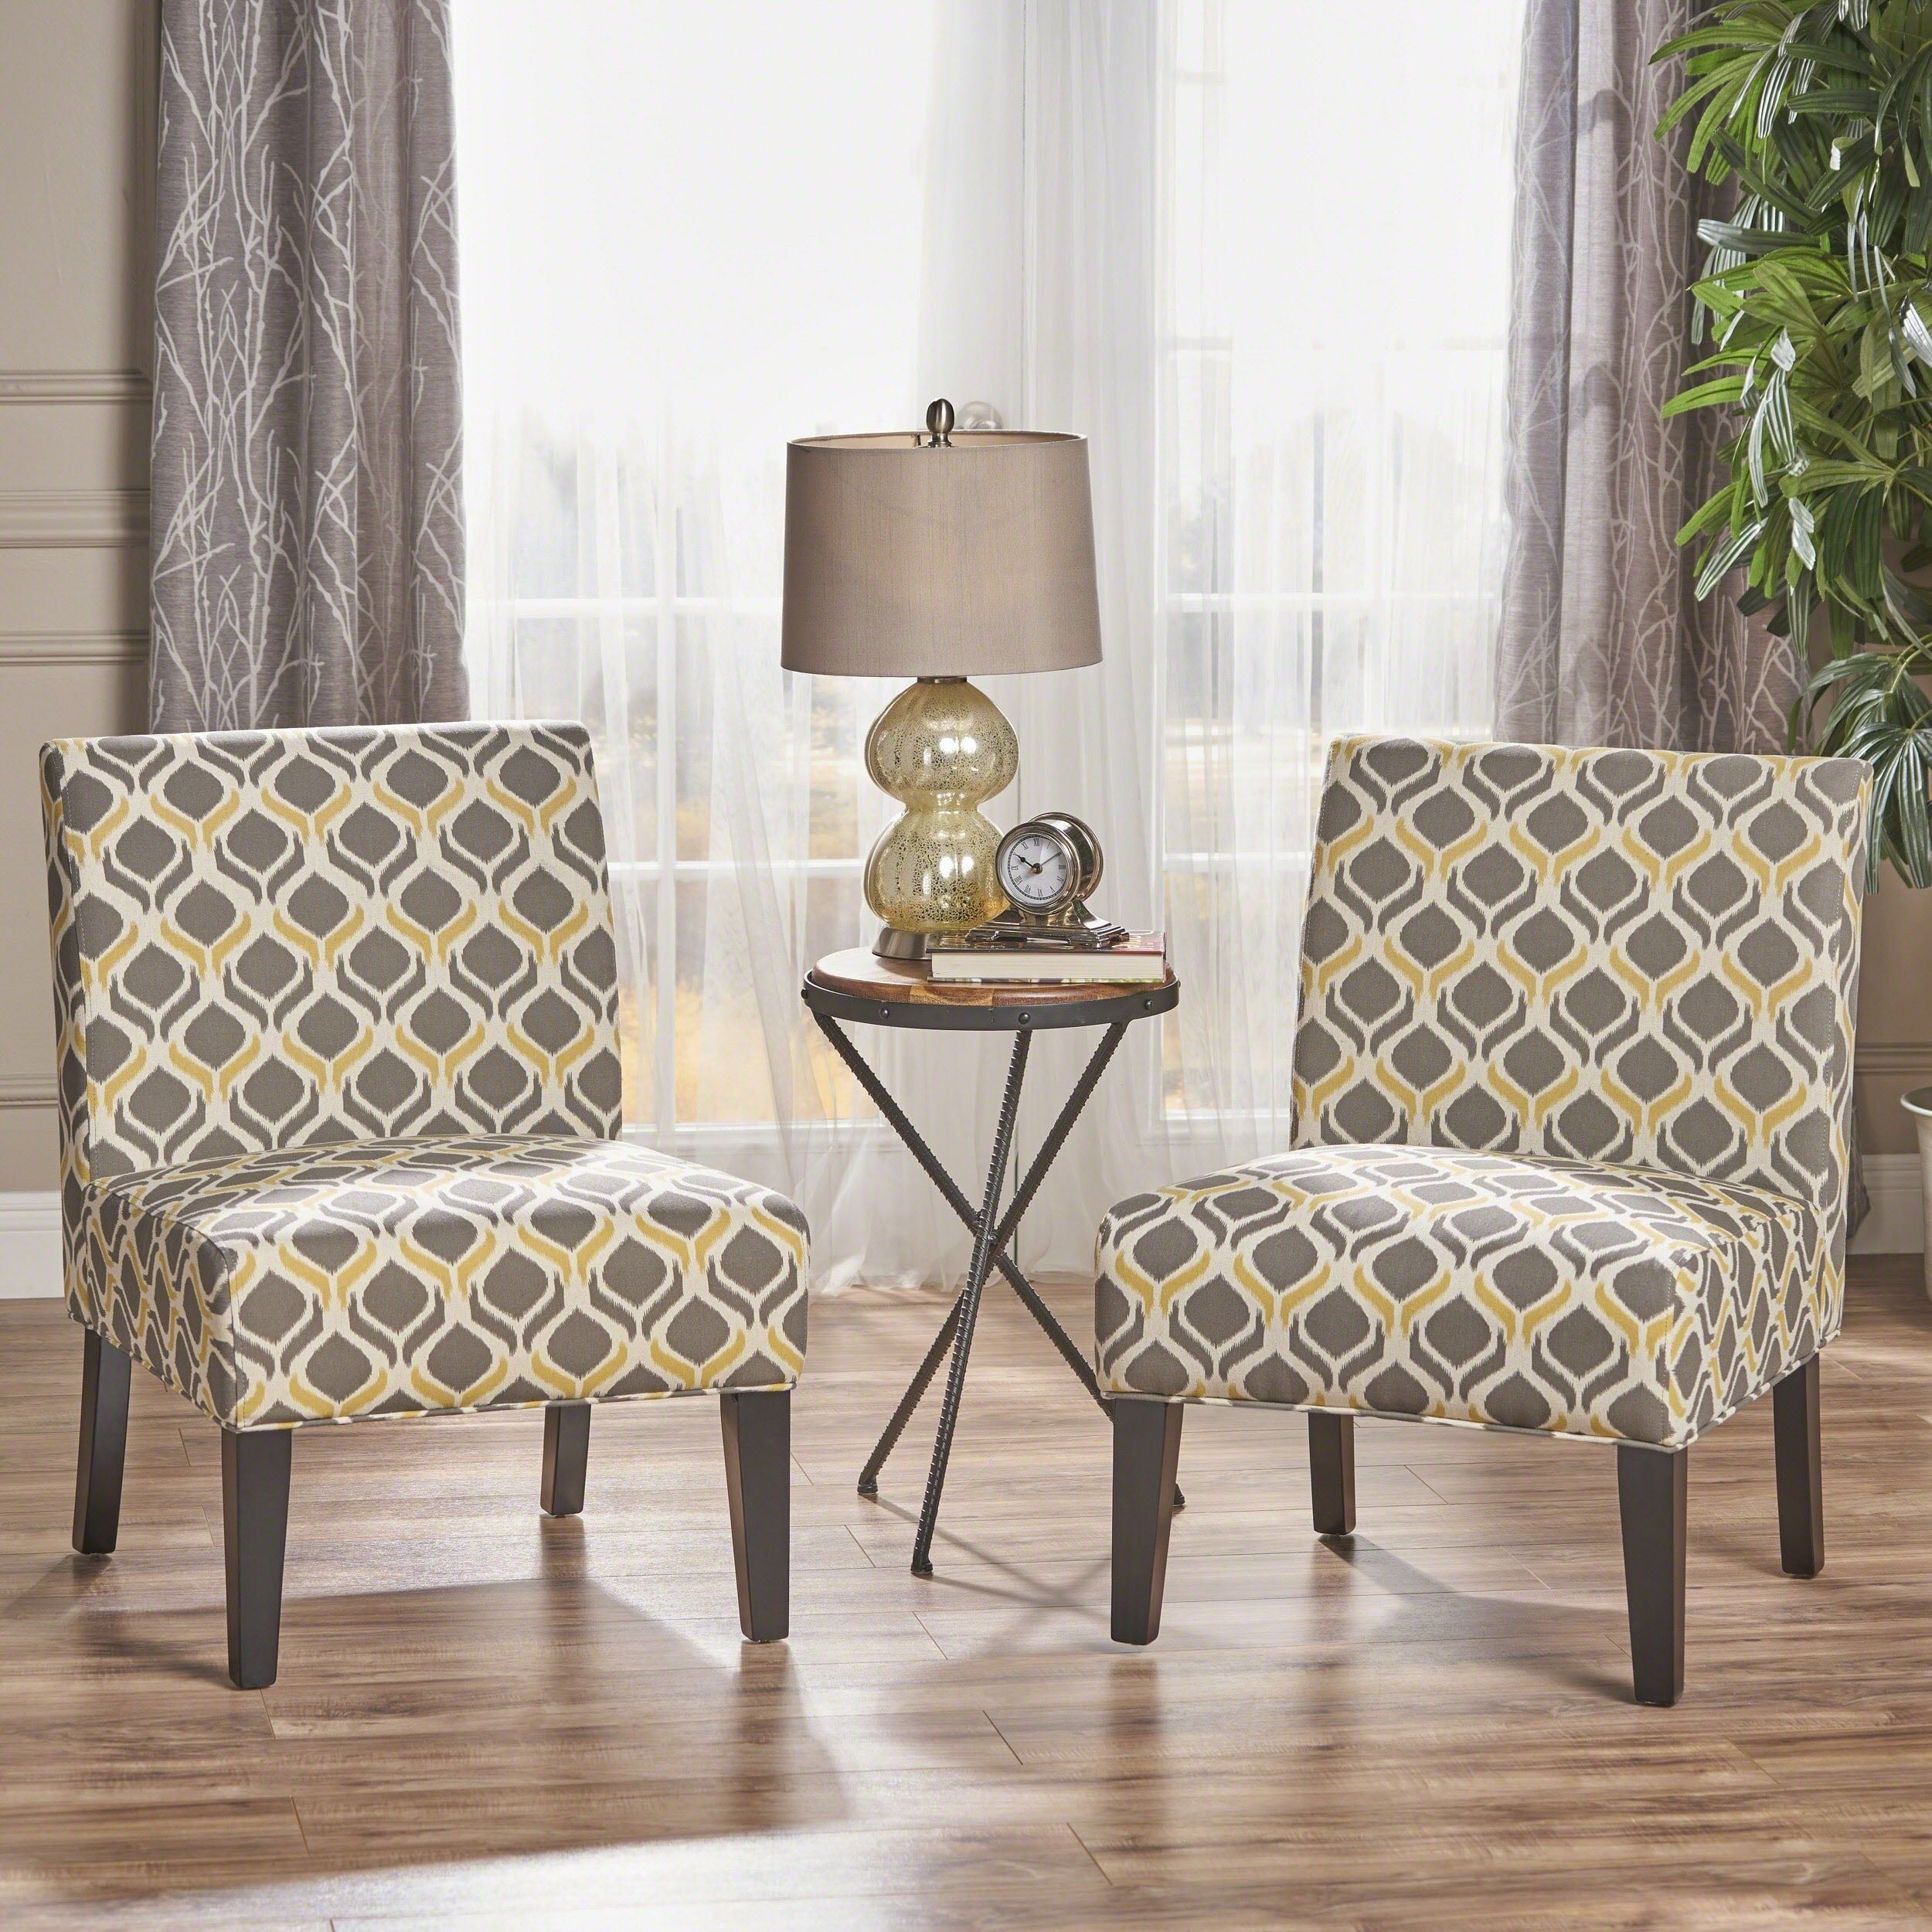 Saloon Contemporary Fabric Slipper Accent Chair Set Of 2 By Christopher Knight Home Accent Chairs For Living Room Fabric Accent Chair Yellow Accent Chairs